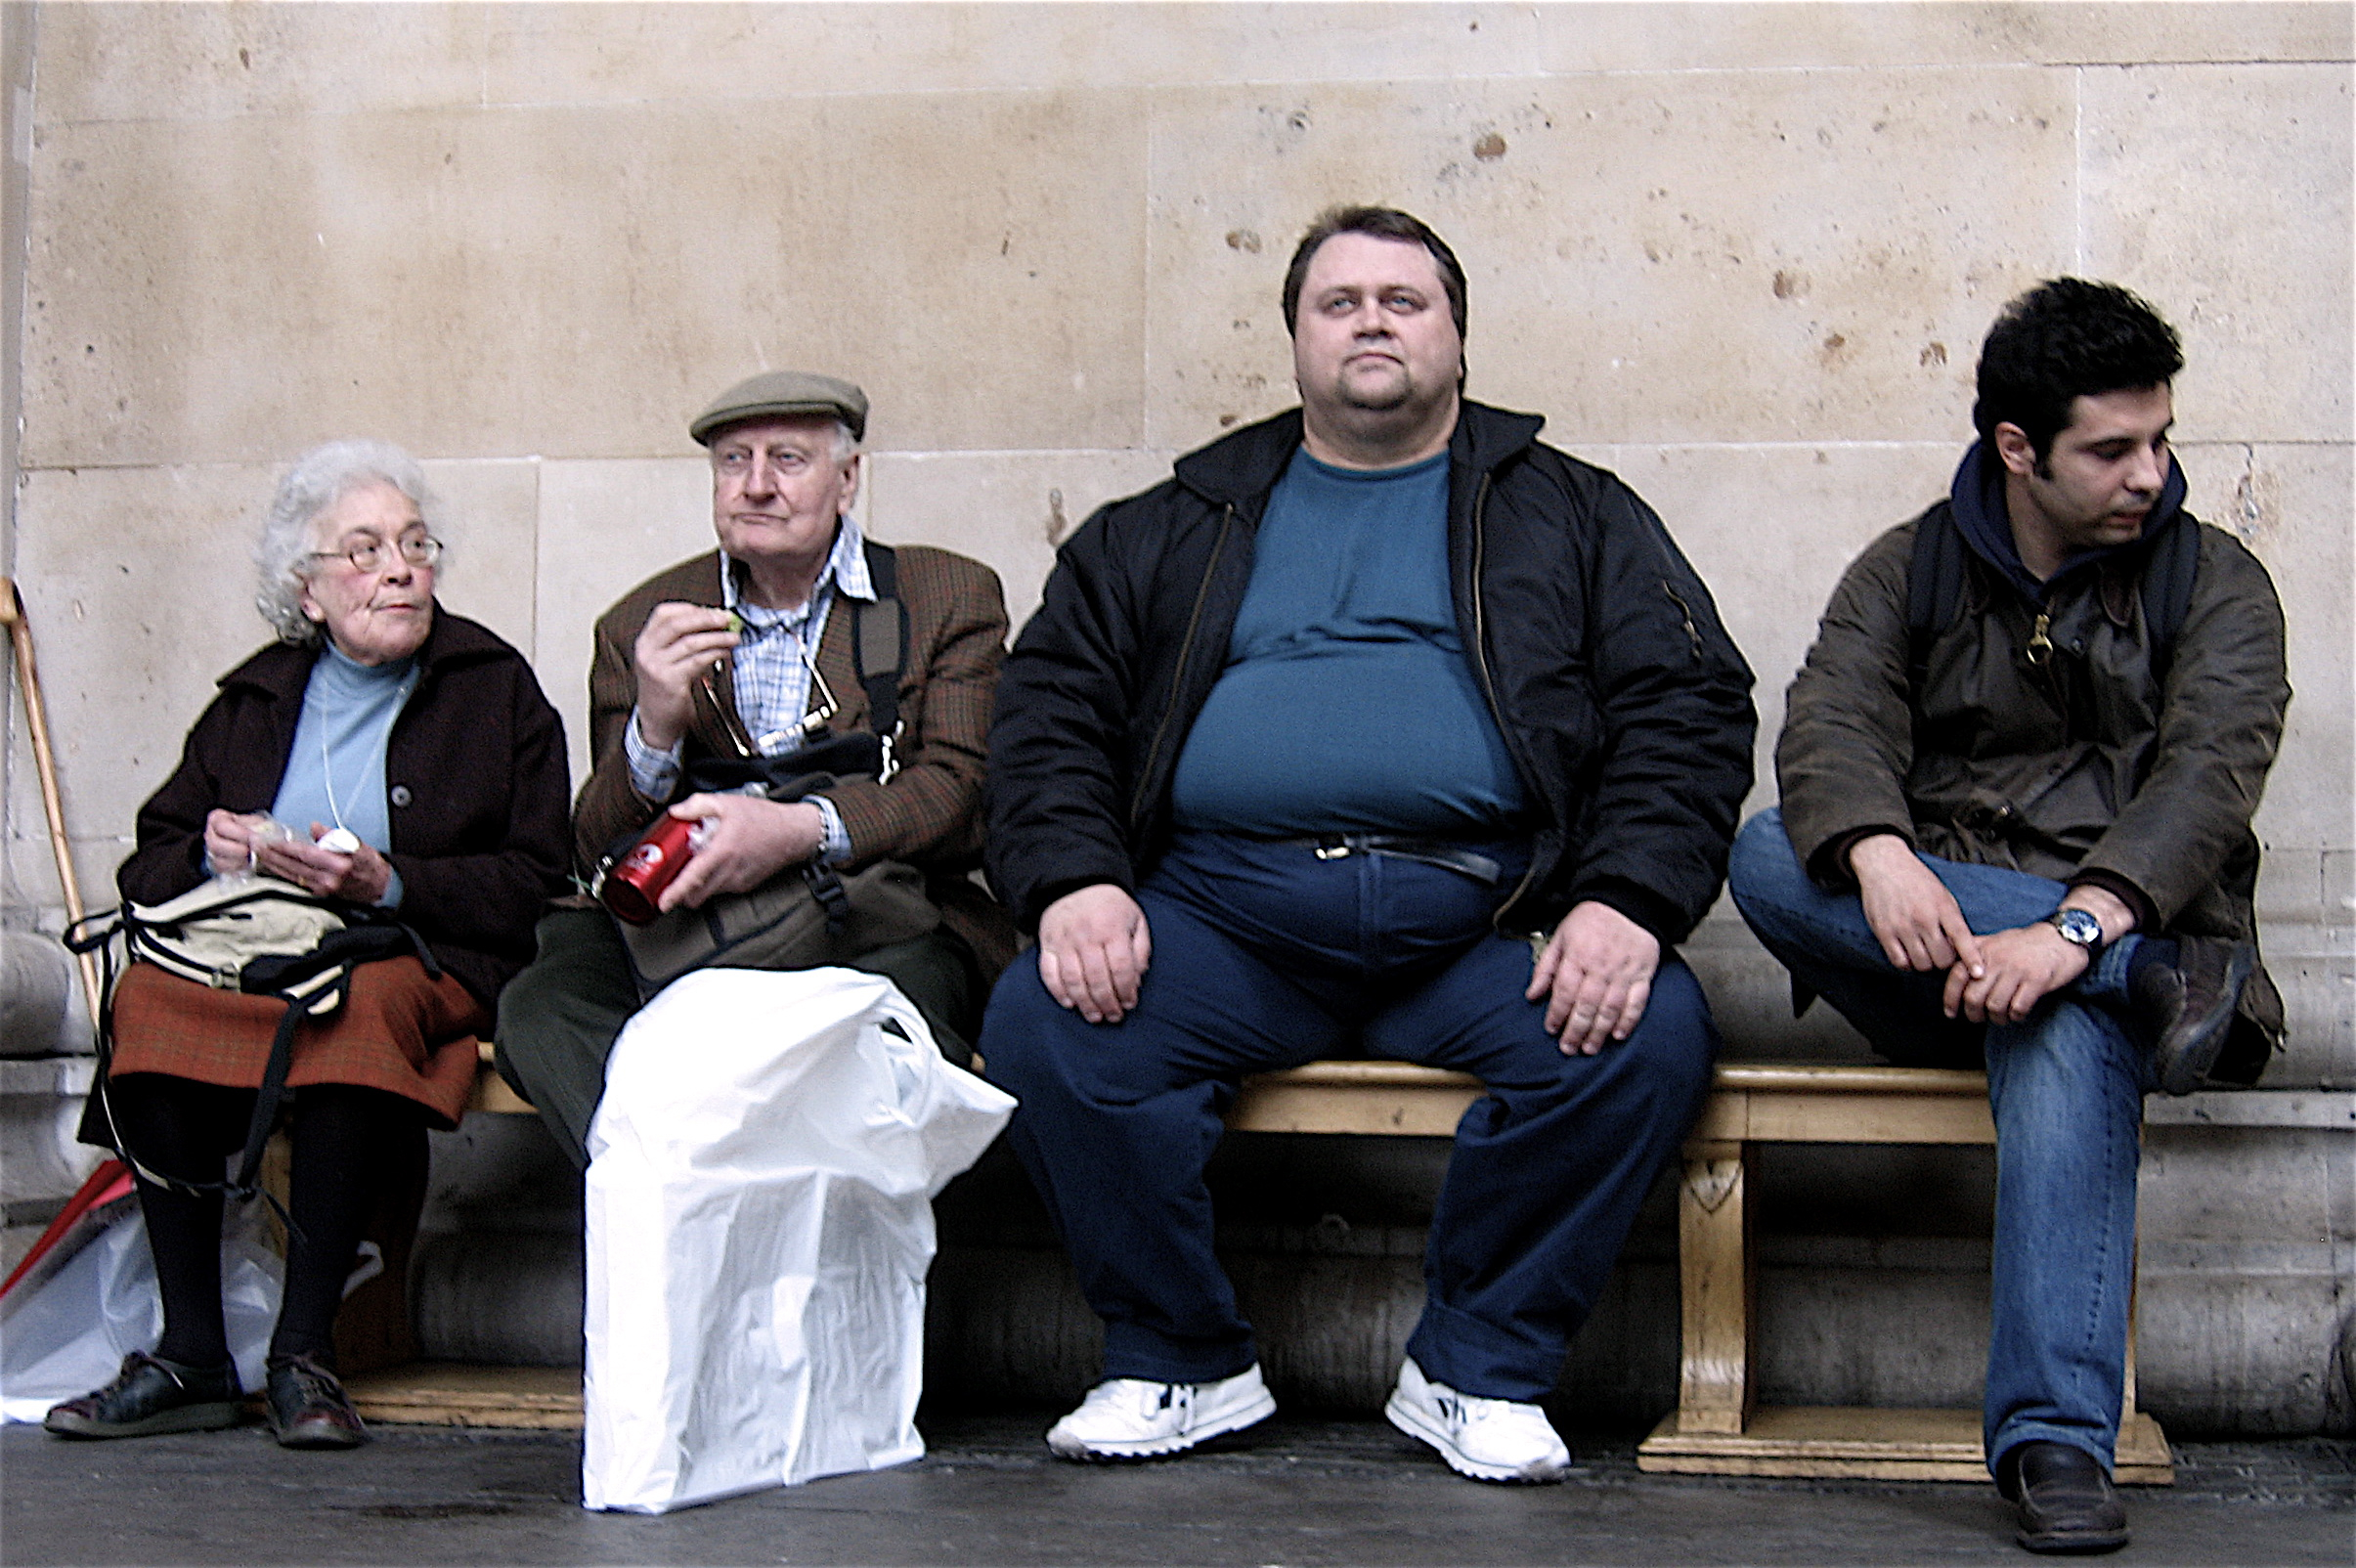 2006-03-25 - United Kingdom - England - London - British Museum - Four People - Old Couple - Fat Man